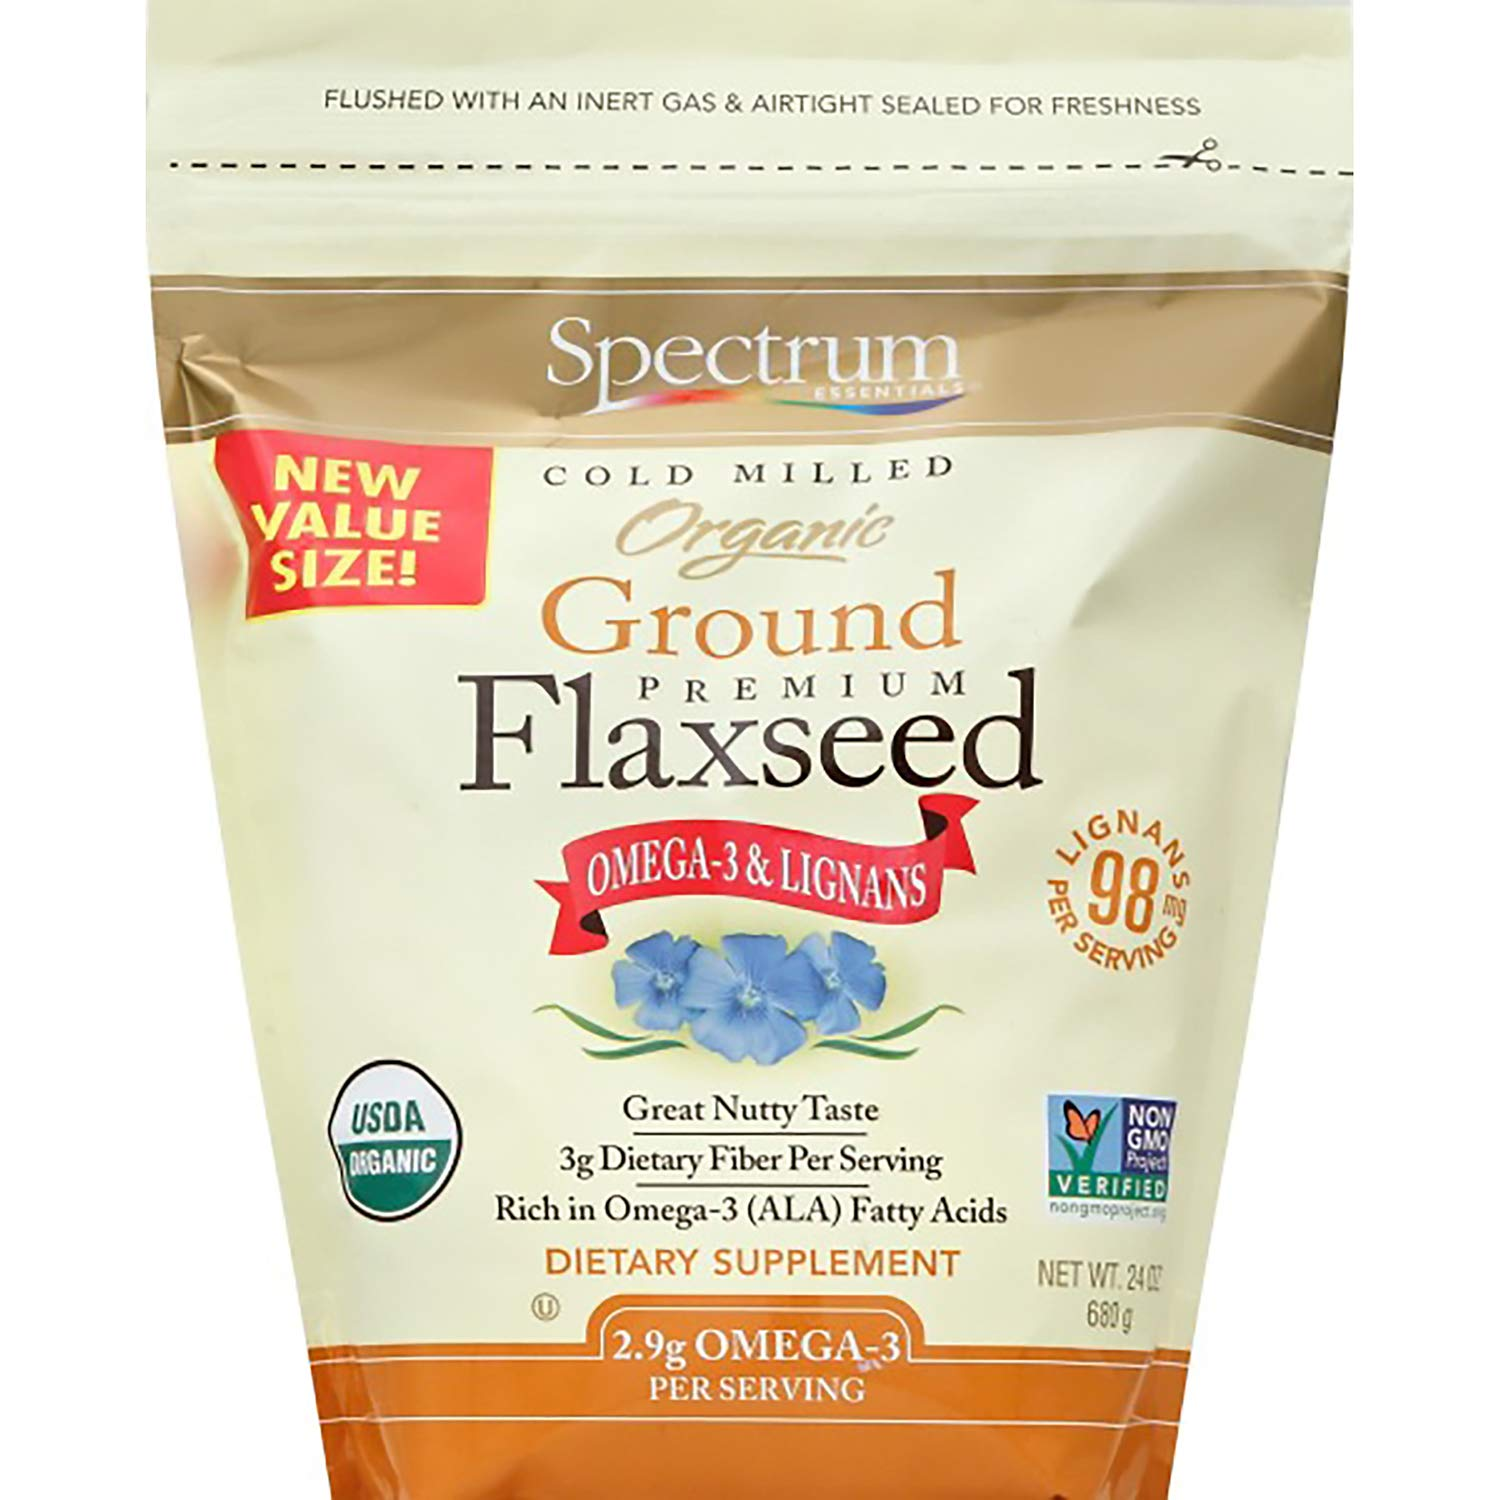 Spectrum Essentials Organic Ground Premium Flaxseed, 24 Oz